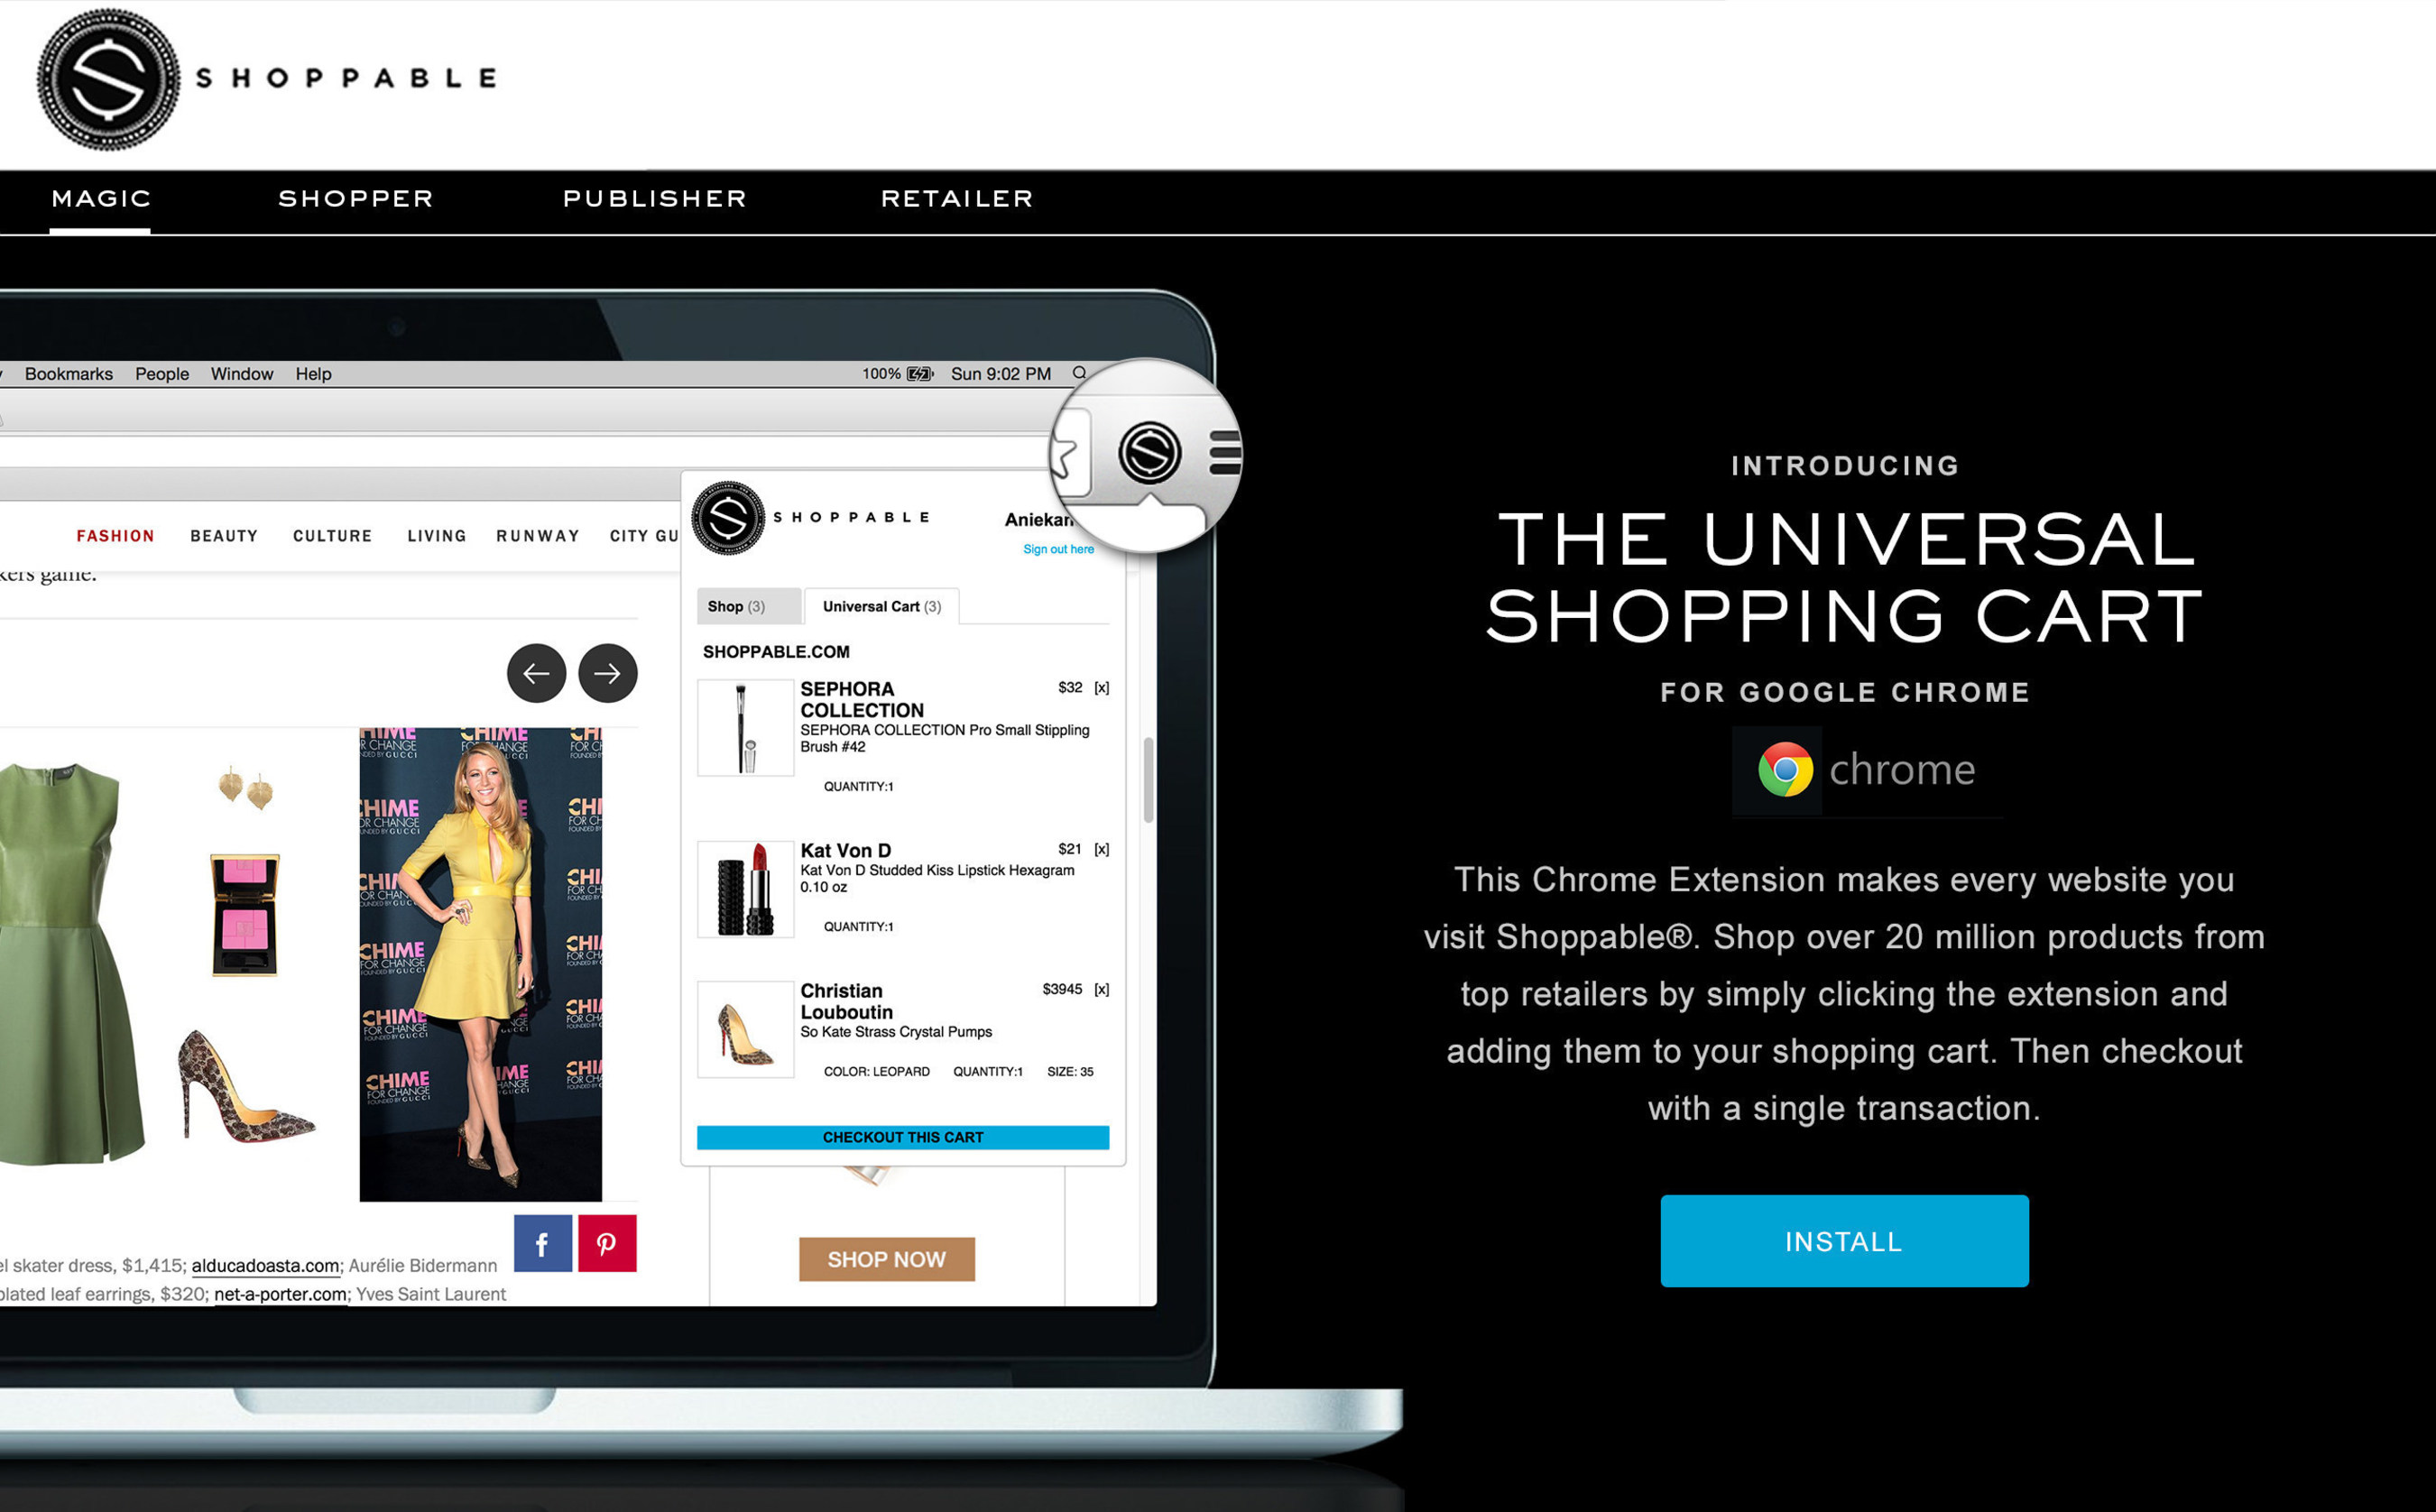 New Google Chrome Extension Provides Universal Shopping Cart, Makes